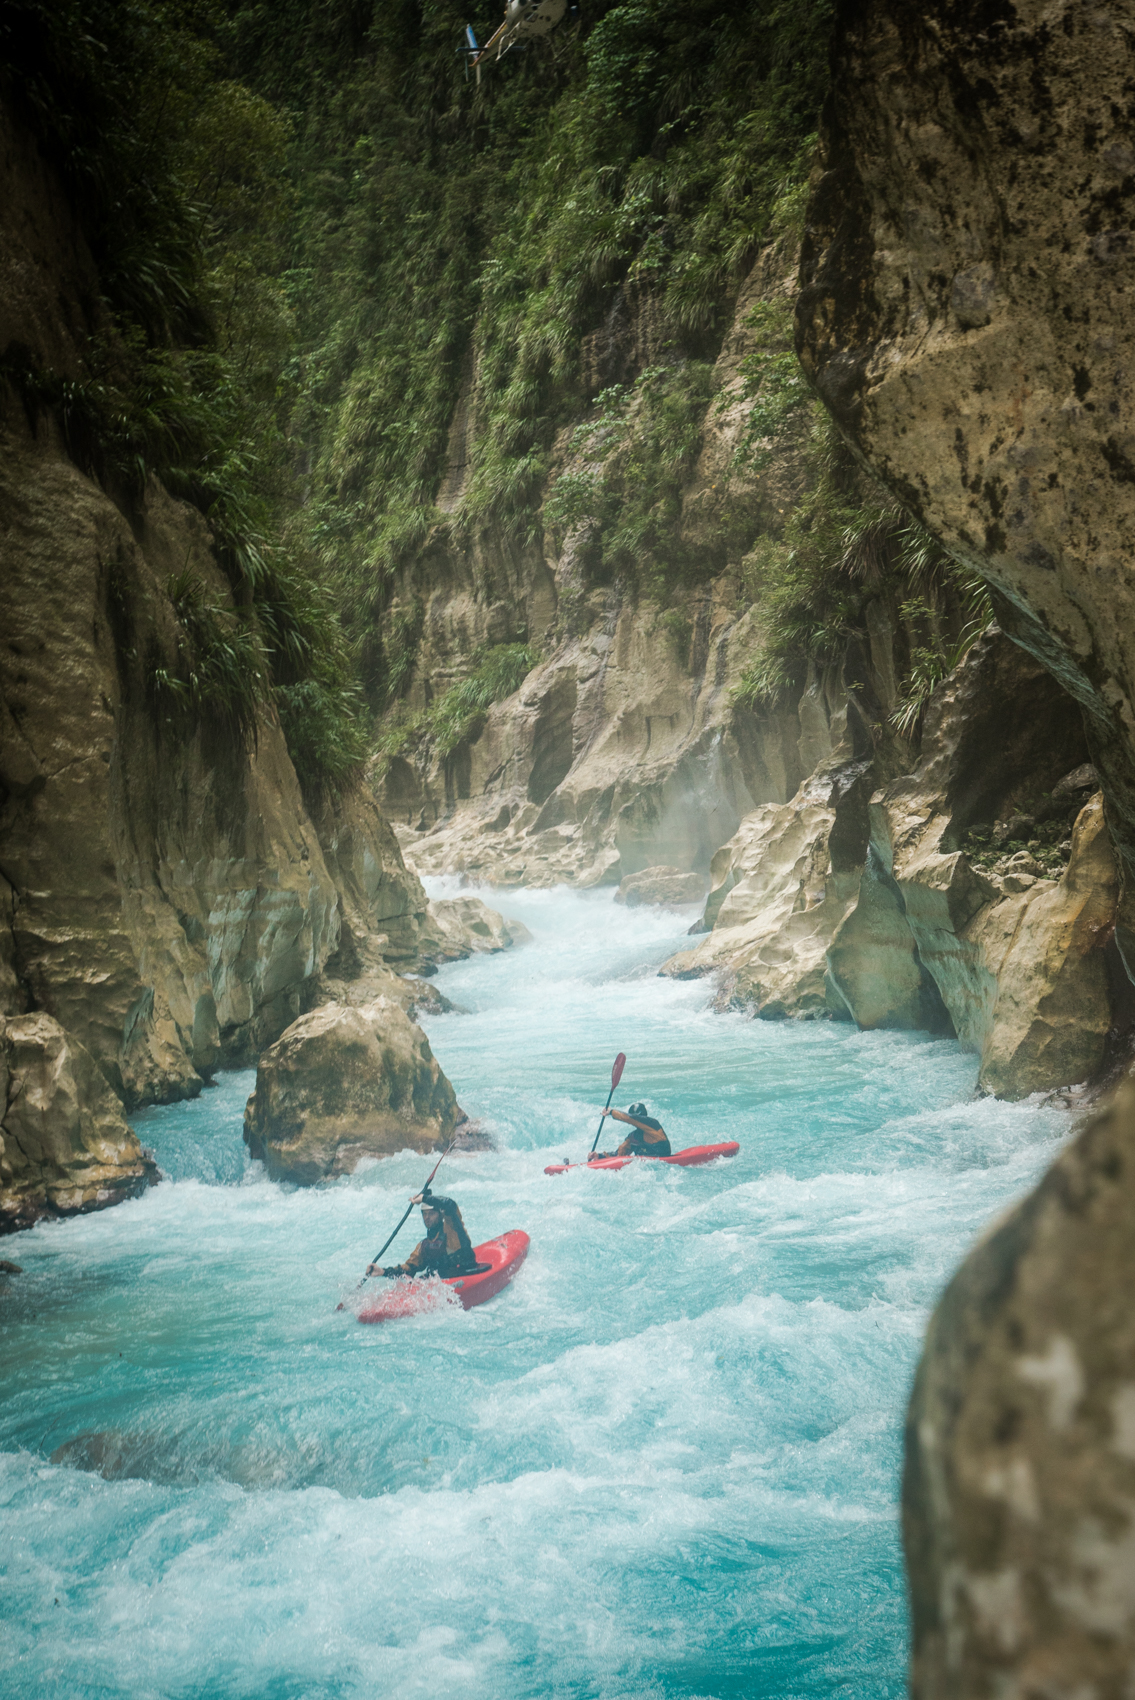 Paddling through a wild canyon in Papua New Guinea.